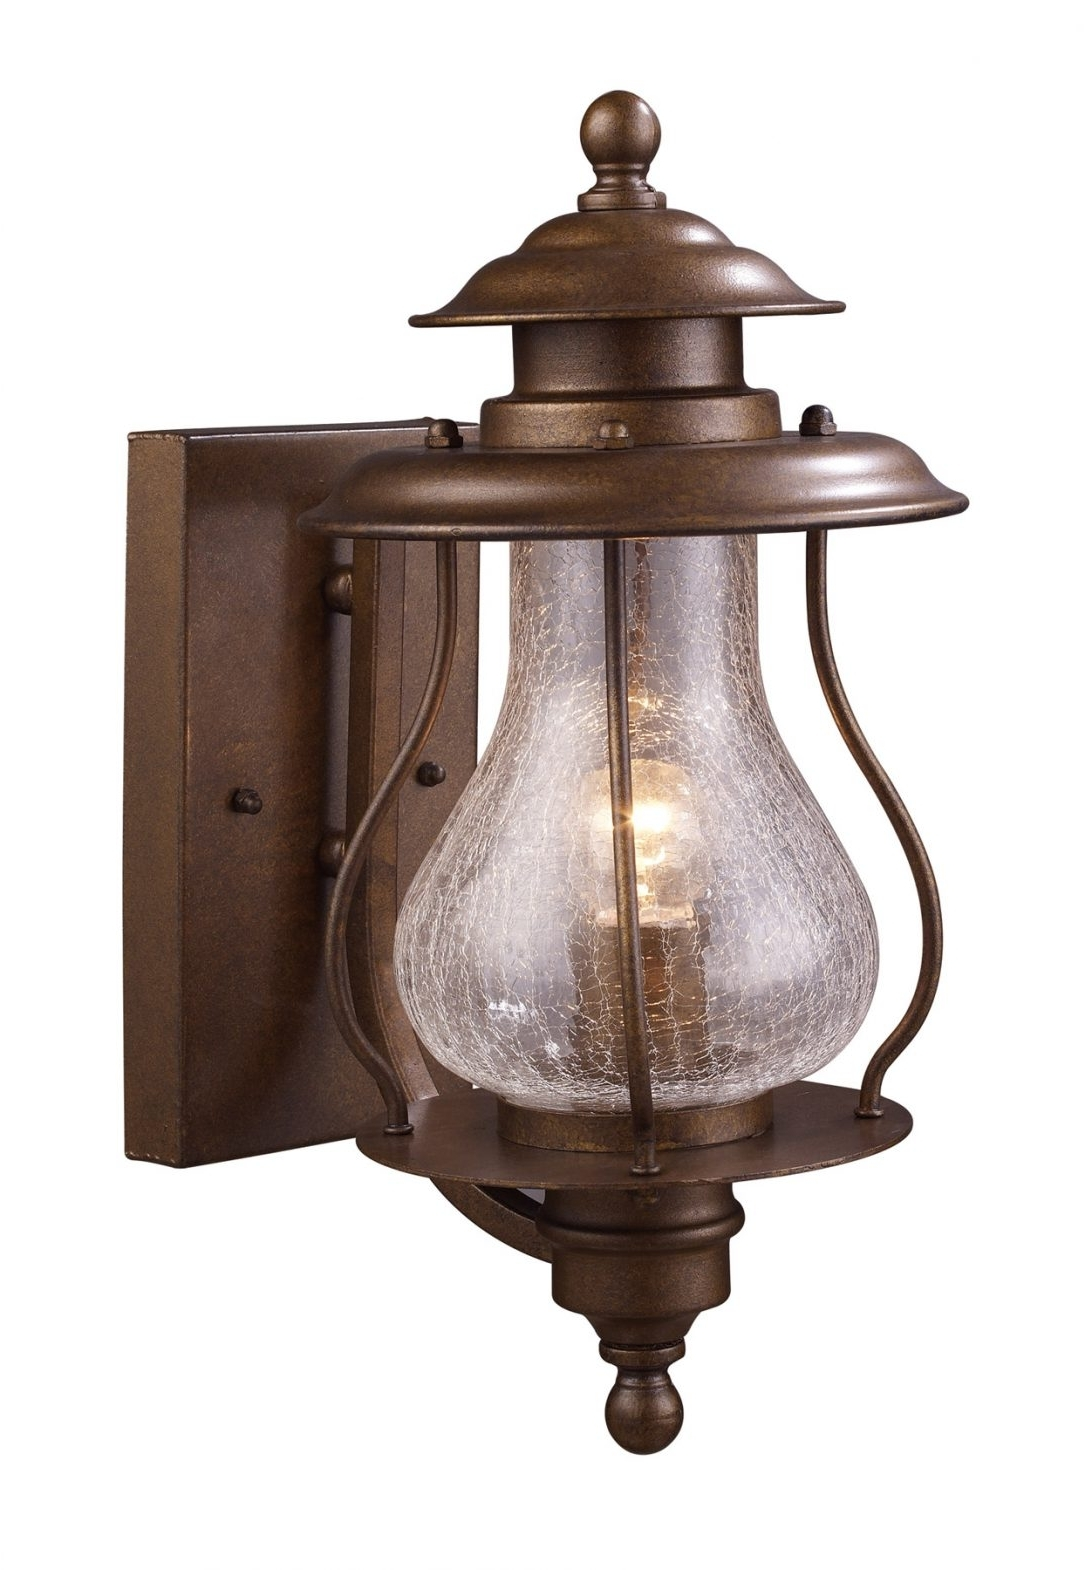 2019 Wall Mounted Outdoor Lanterns With Regard To Wall Mount Porch Lights Patio Exterior Solar Outdoor Lanterns (View 1 of 20)